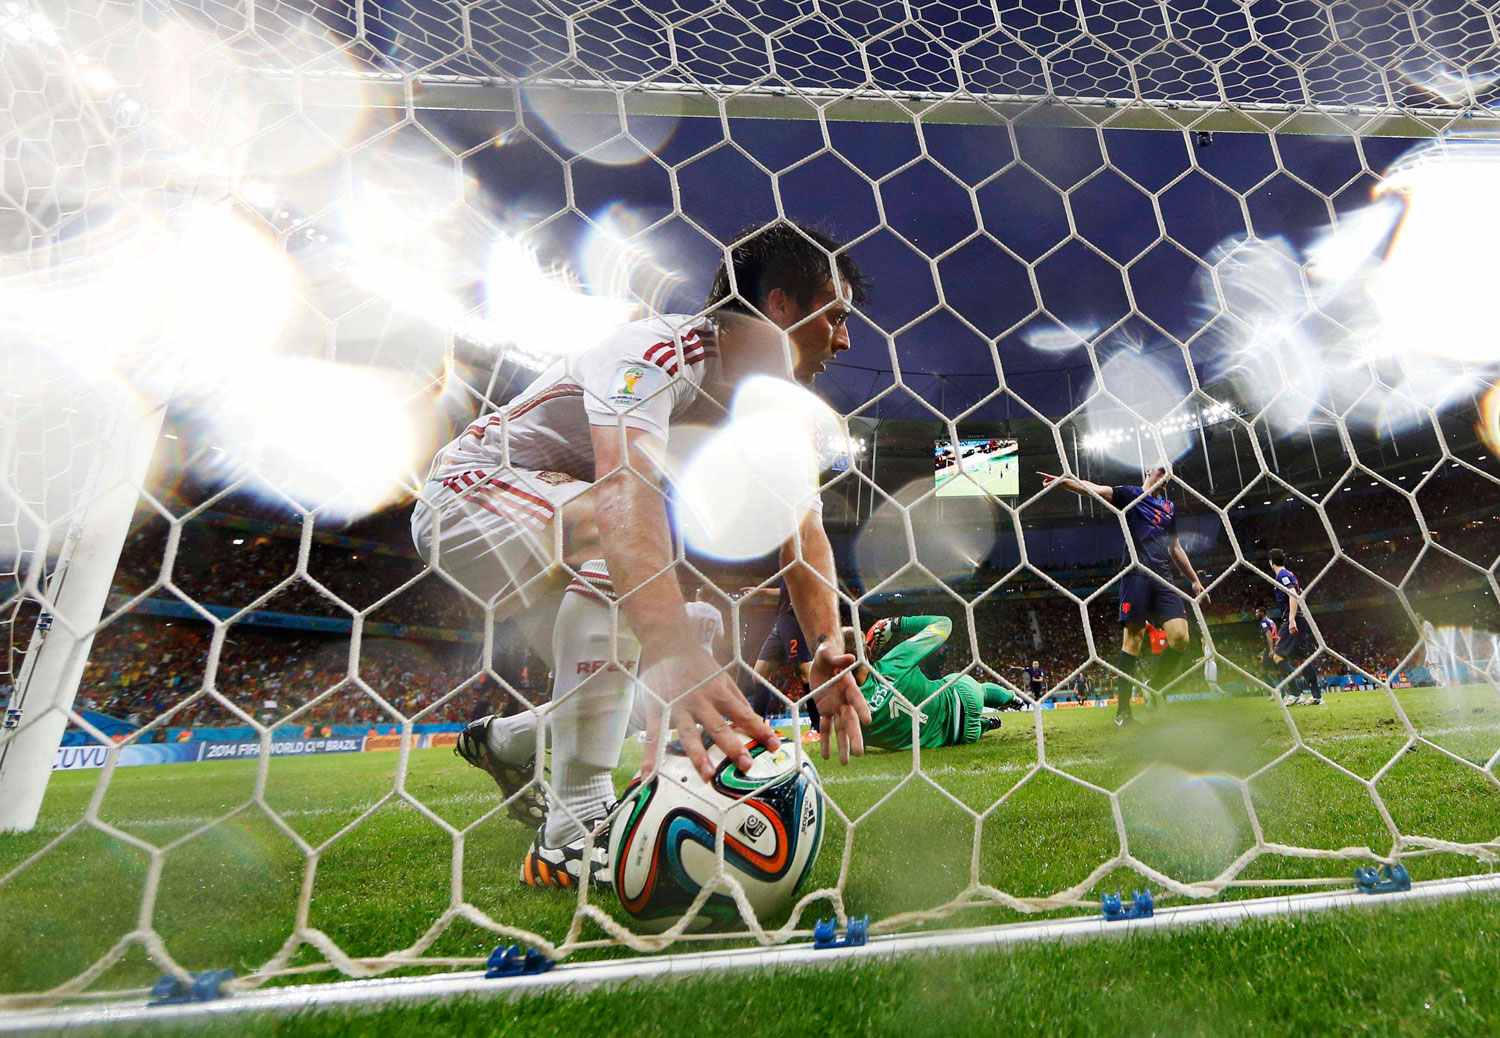 Spain's David Silva picks the ball out of the net after his goal against the Netherlands was disallowed during their match at the Fonte Nova arena in Salvador, Brazil on June 13, 2014.